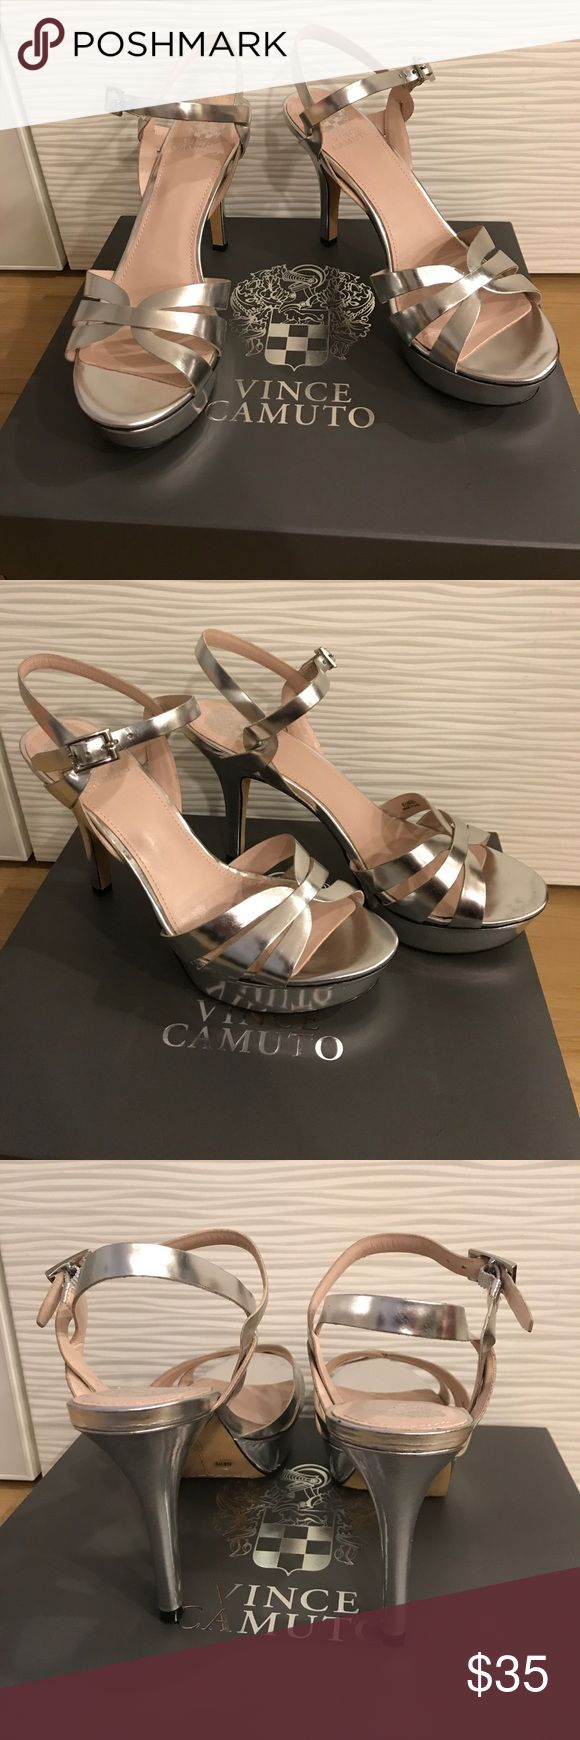 Vince Camuto Silver Strappy High Heel Brand new never worn Vince Camuto silver strappy high heels in size 9 ½. Every fashionista has to have a pair of silver heels it's a wardrobe staple. Vince Camuto Shoes Heels